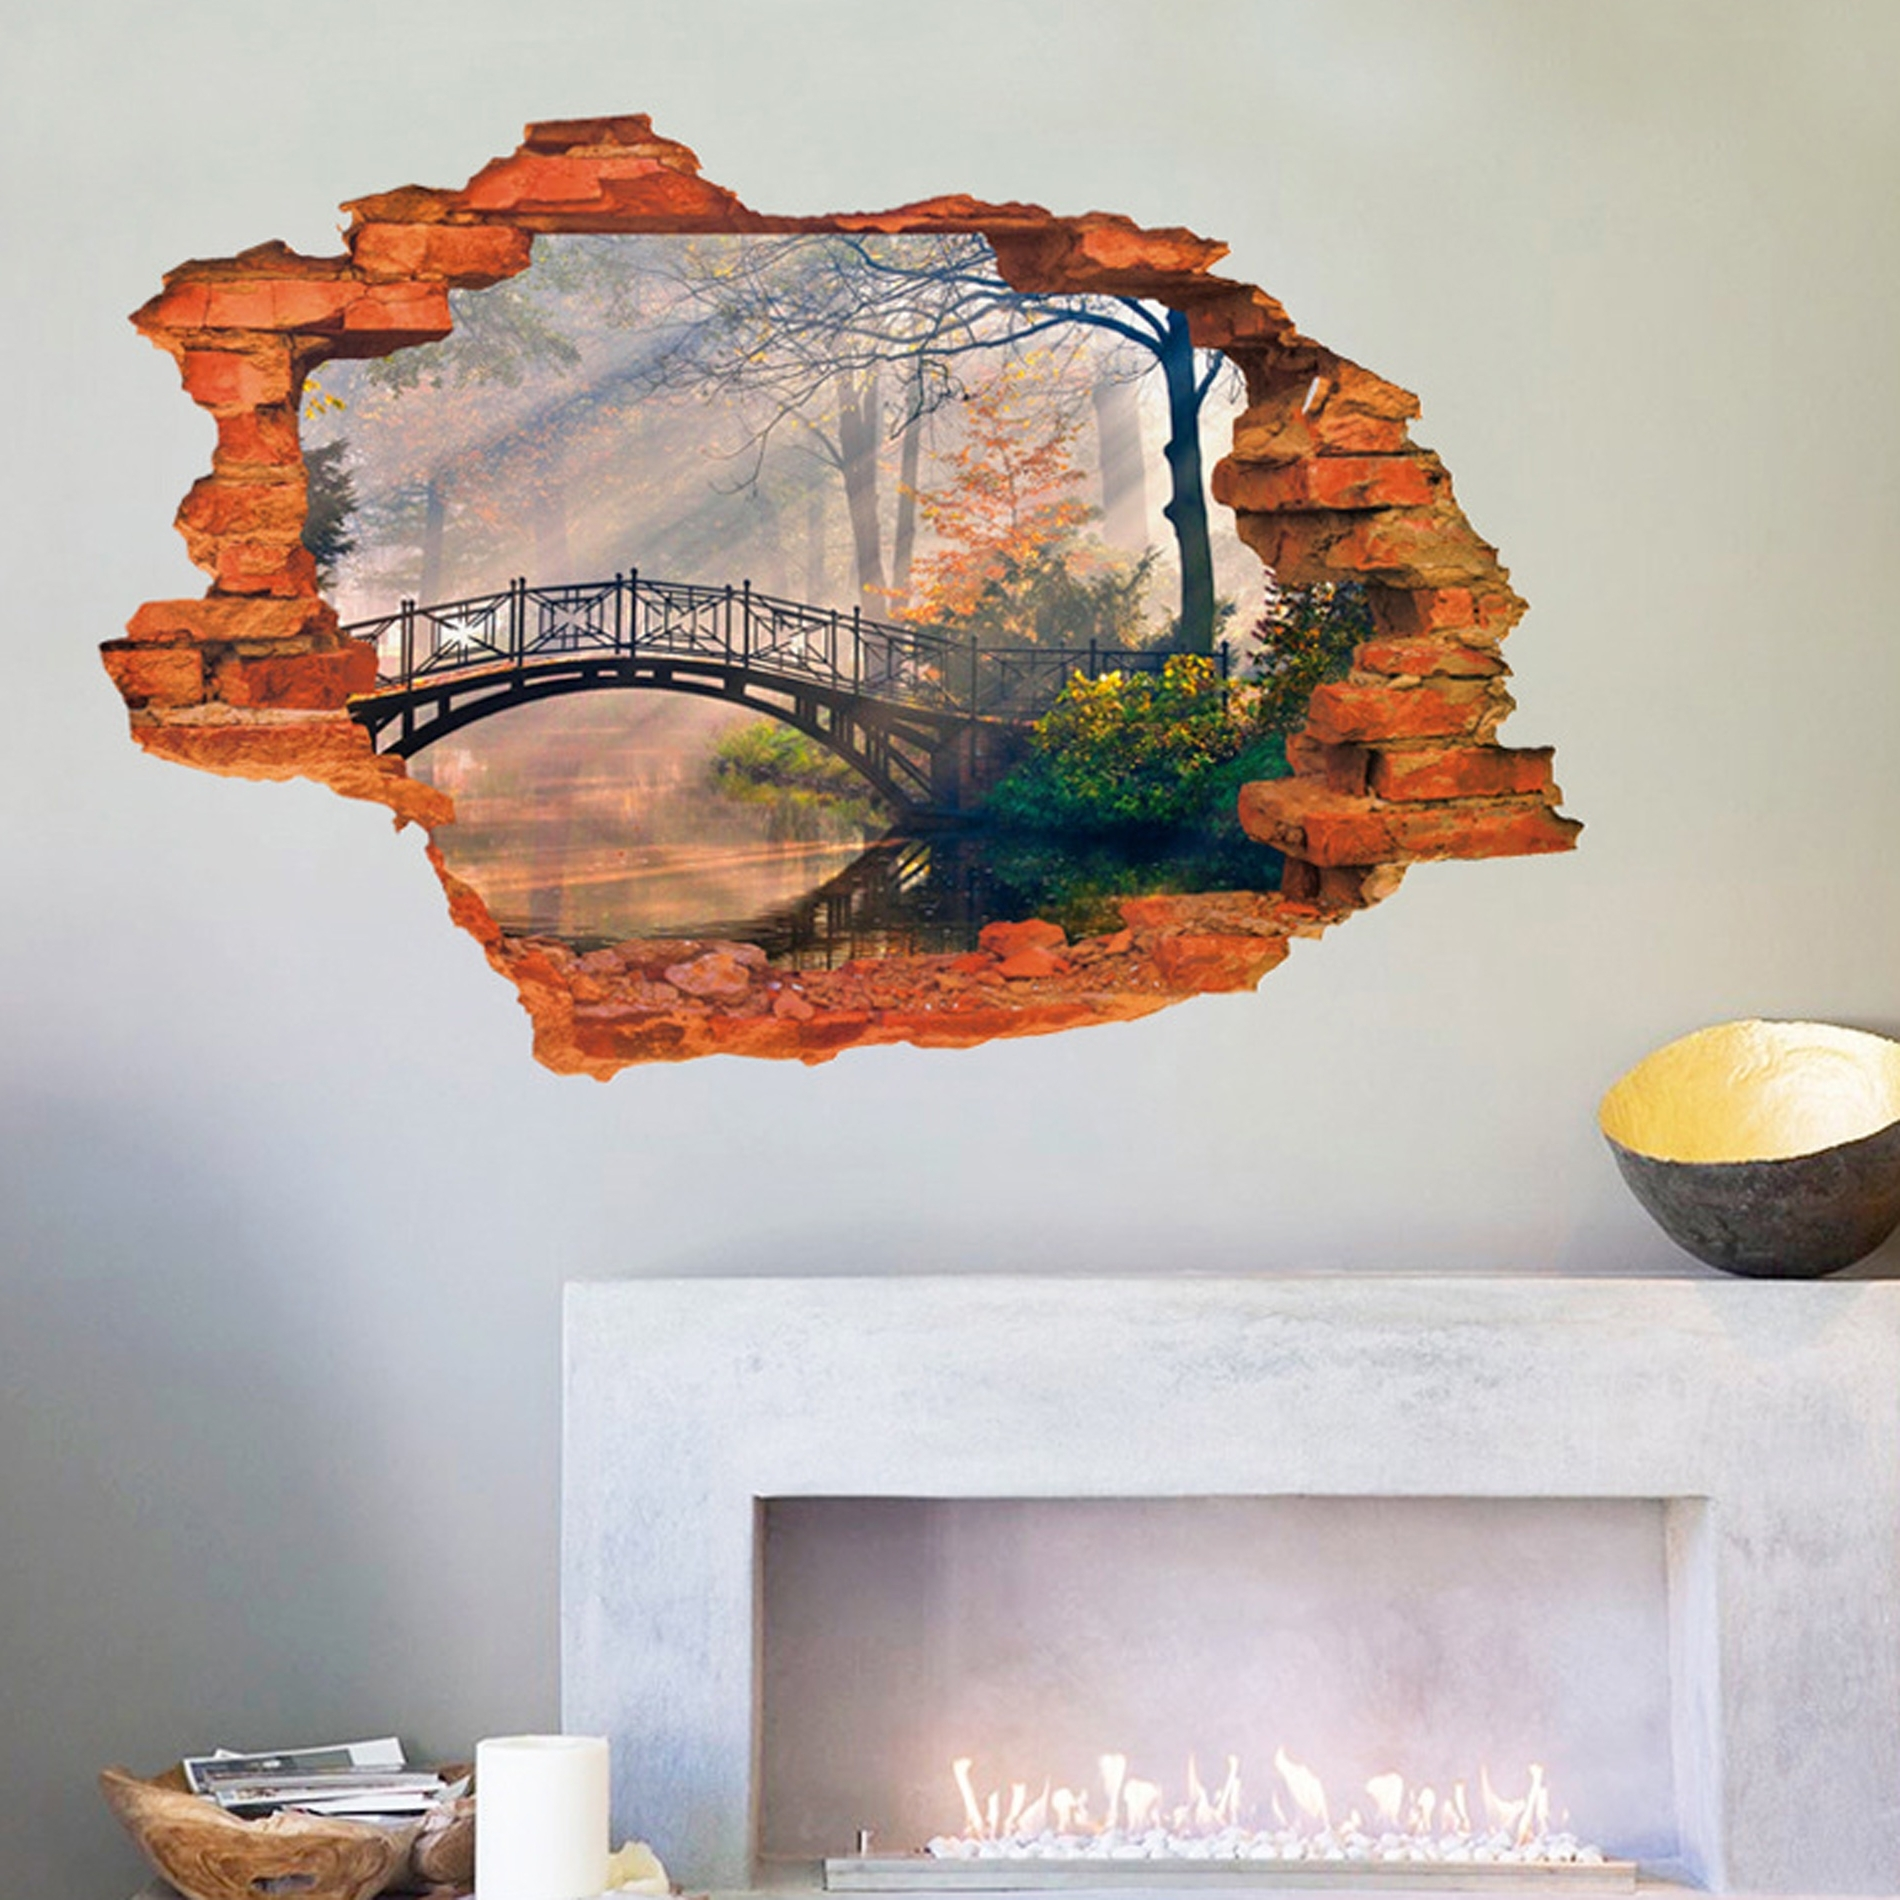 Vinyl 3d Wall Art Within Well Known Removable 3d Broken Wall Stickers Art Vinyl Mural Home Decor + Key (View 4 of 15)